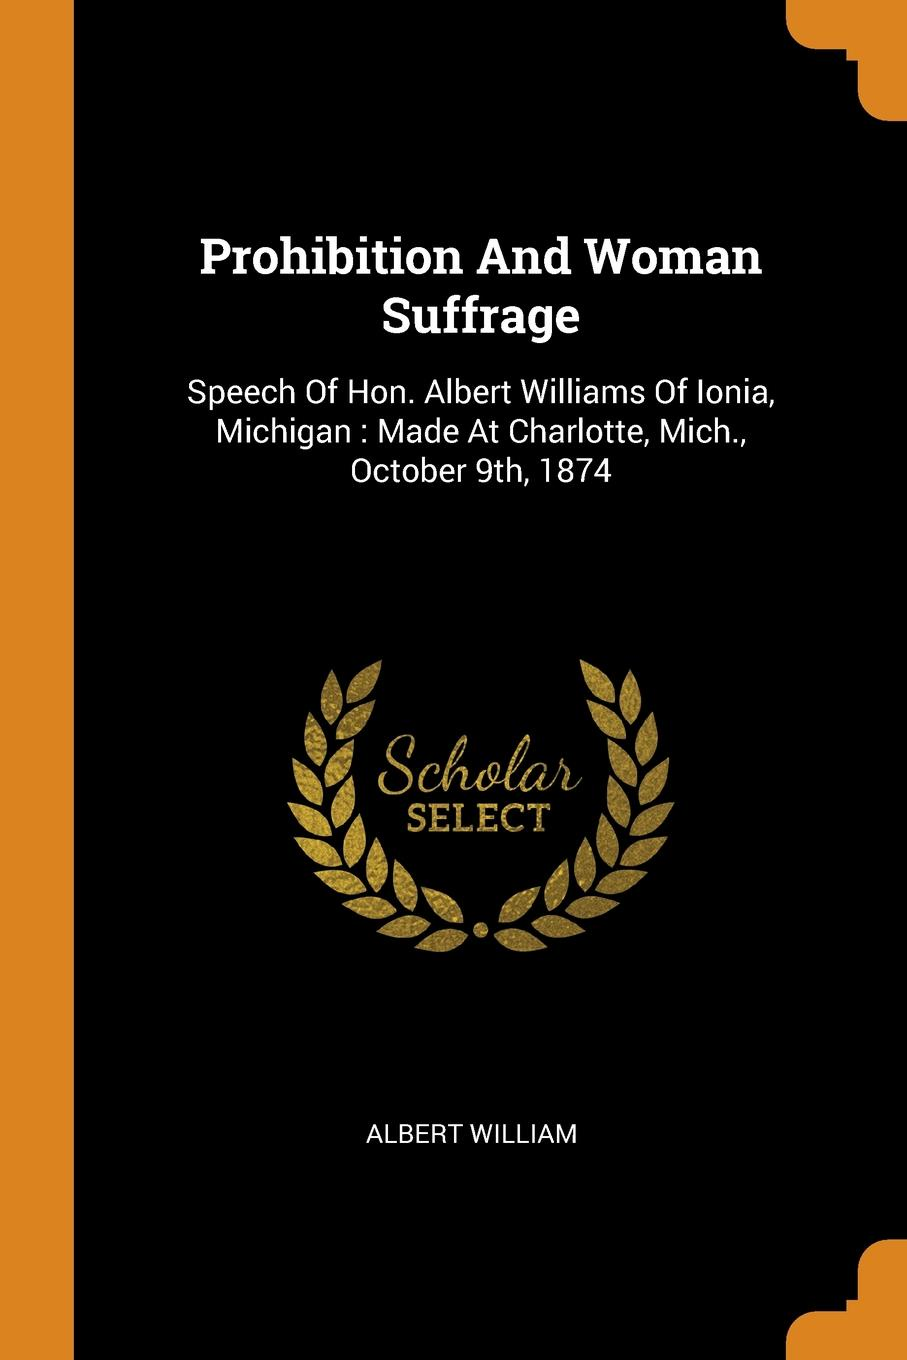 Albert William Prohibition And Woman Suffrage. Speech Of Hon. Albert Williams Of Ionia, Michigan : Made At Charlotte, Mich., October 9th, 1874